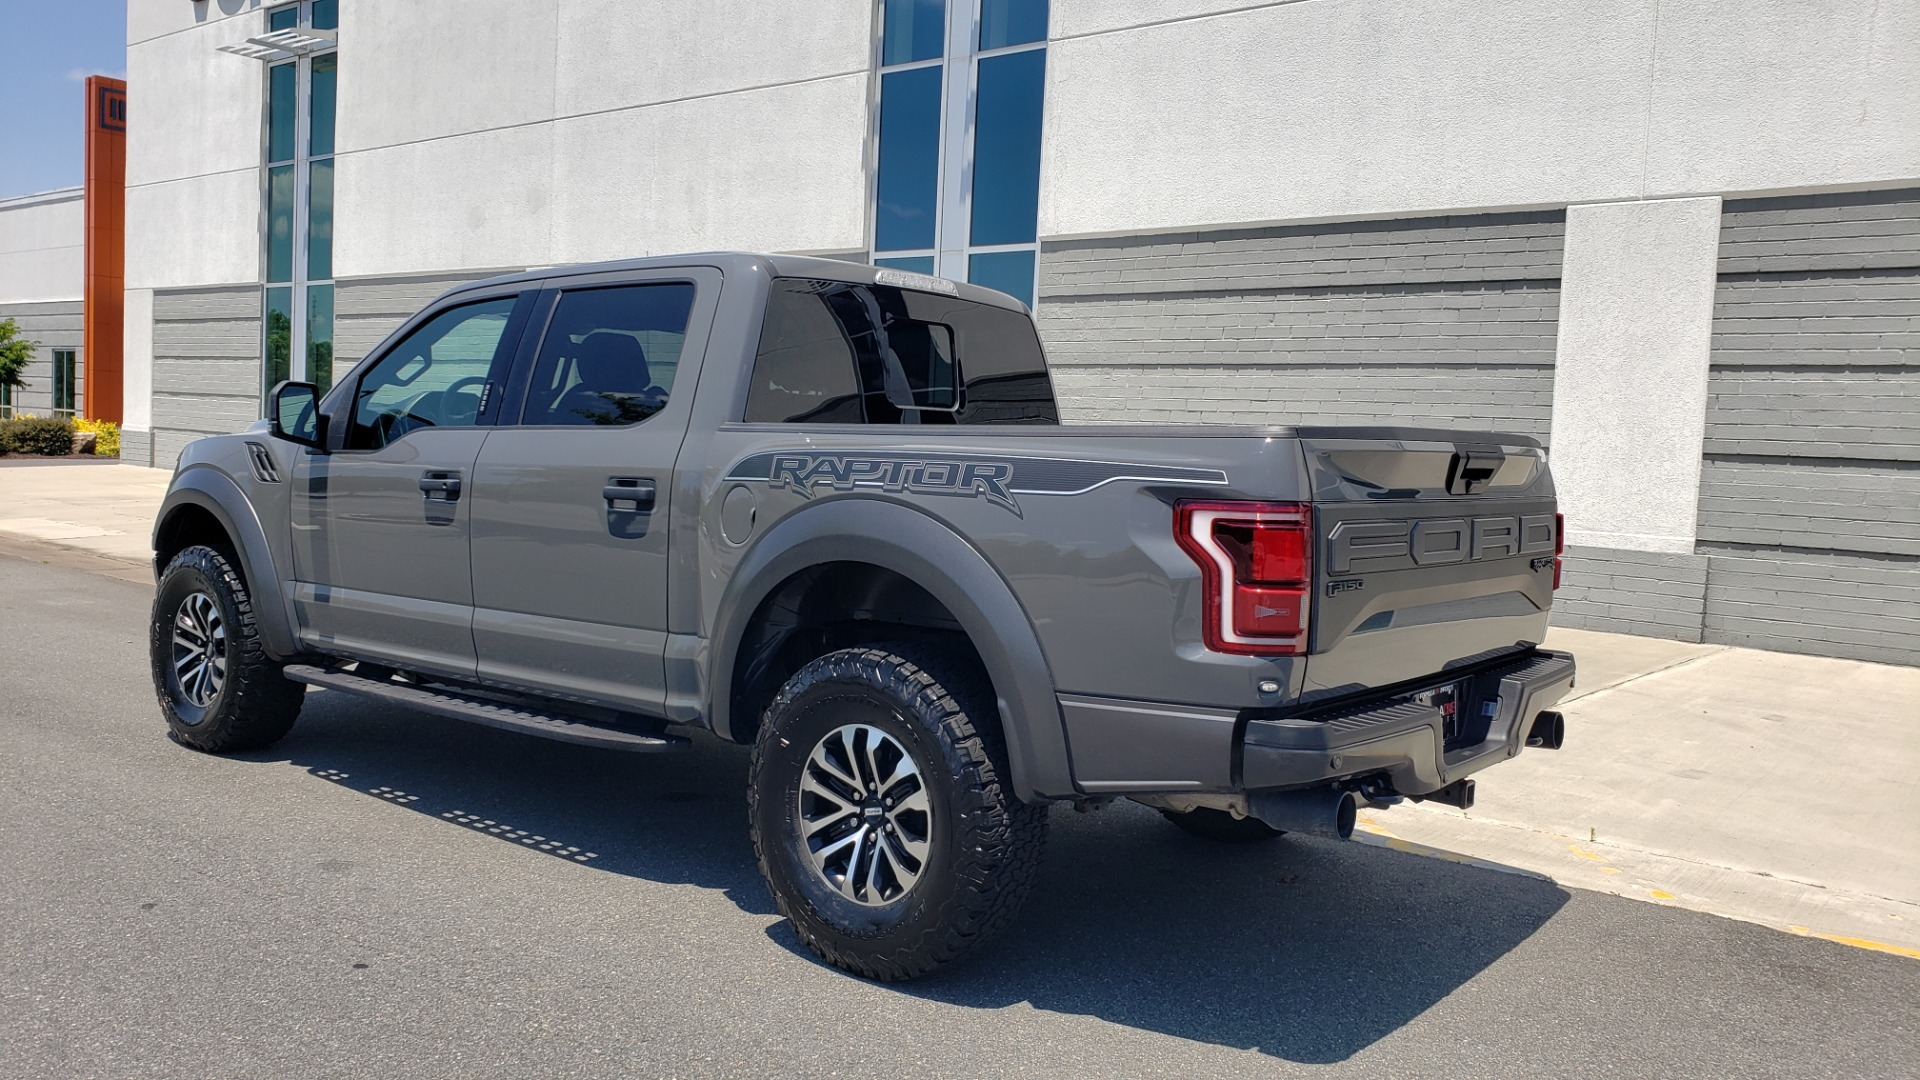 Used 2020 Ford F-150 RAPTOR 4X4 SUPERCREW / 3.5L ECOBOOST / 10-SPD AUTO / SUNROOF / REARVIEW for sale $82,500 at Formula Imports in Charlotte NC 28227 6